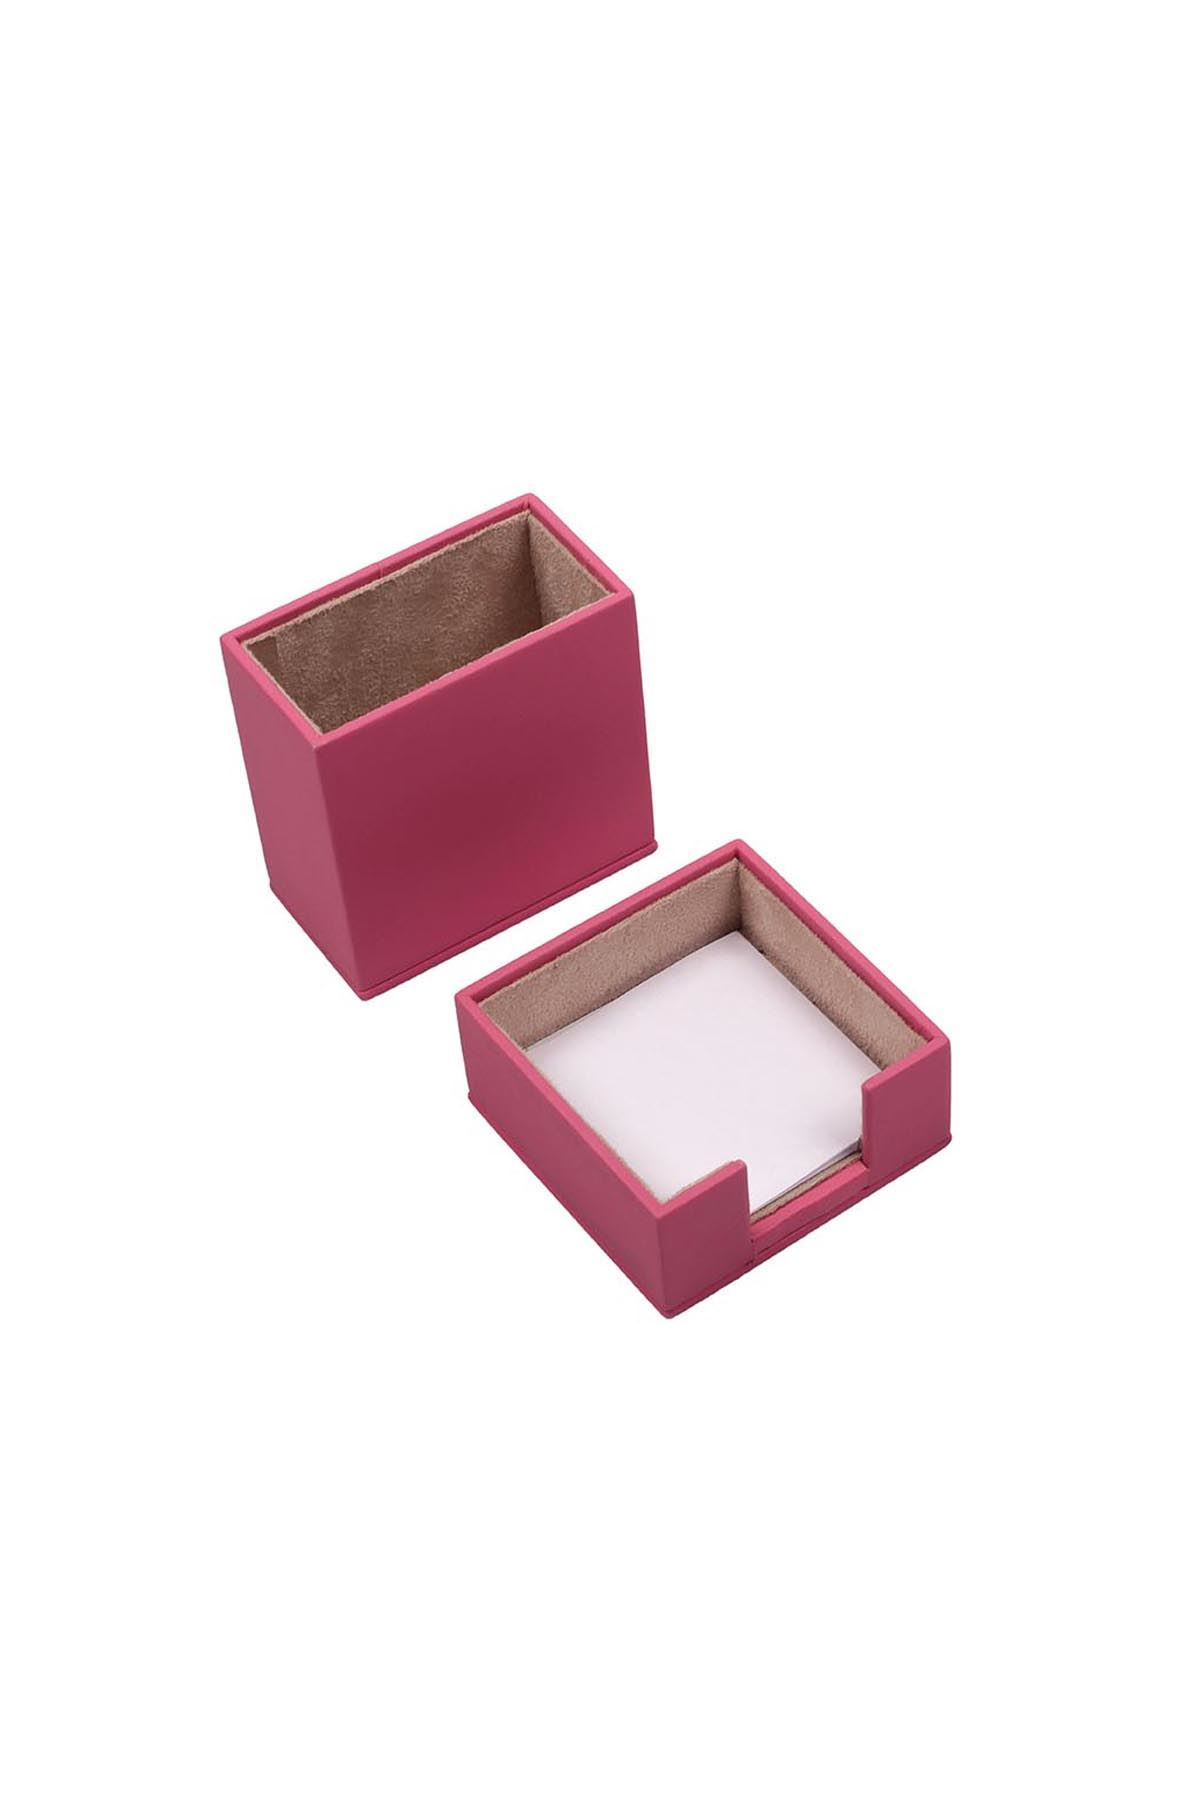 Leather Desk Accessories set of 2 Pink| Desk Set Accessories | Desktop Accessories | Desk Accessories | Desk Organizers | Pencil Holder | Note Paper Holder